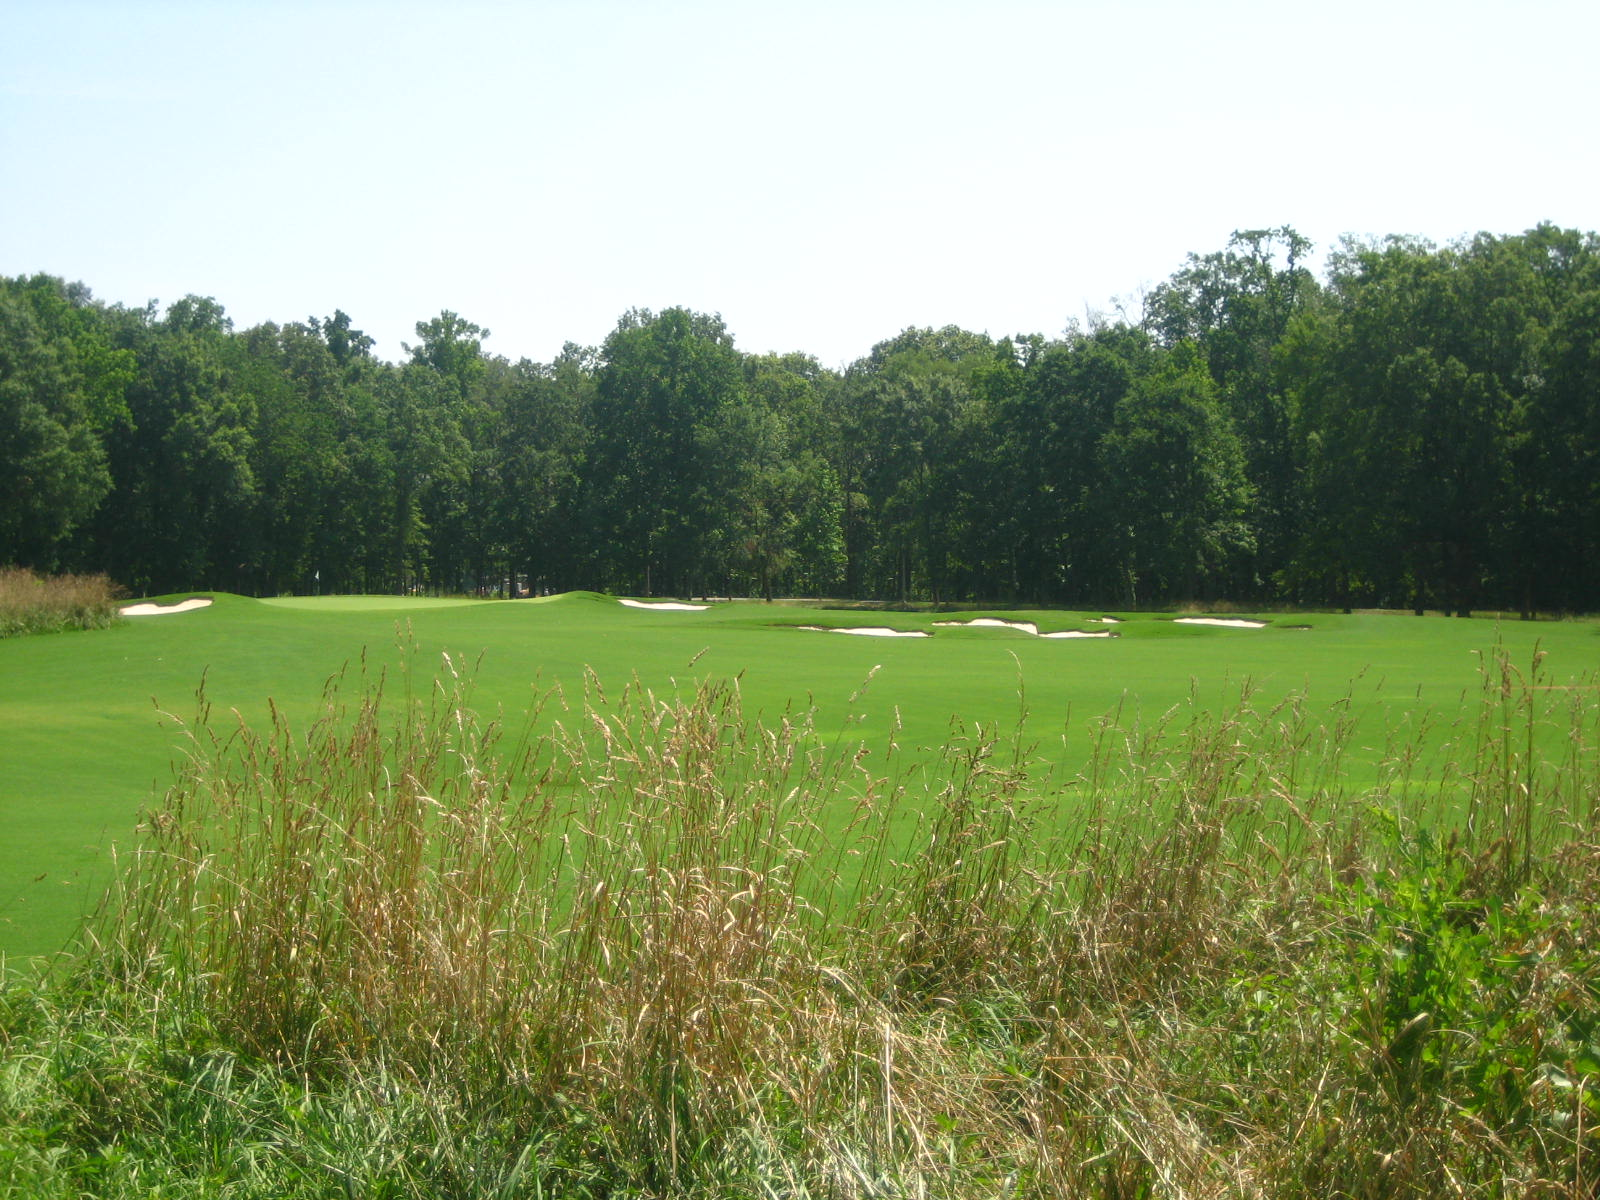 This shot of the par-5 10th playing across the lower farm section gives indication of the width and scale of the holes.